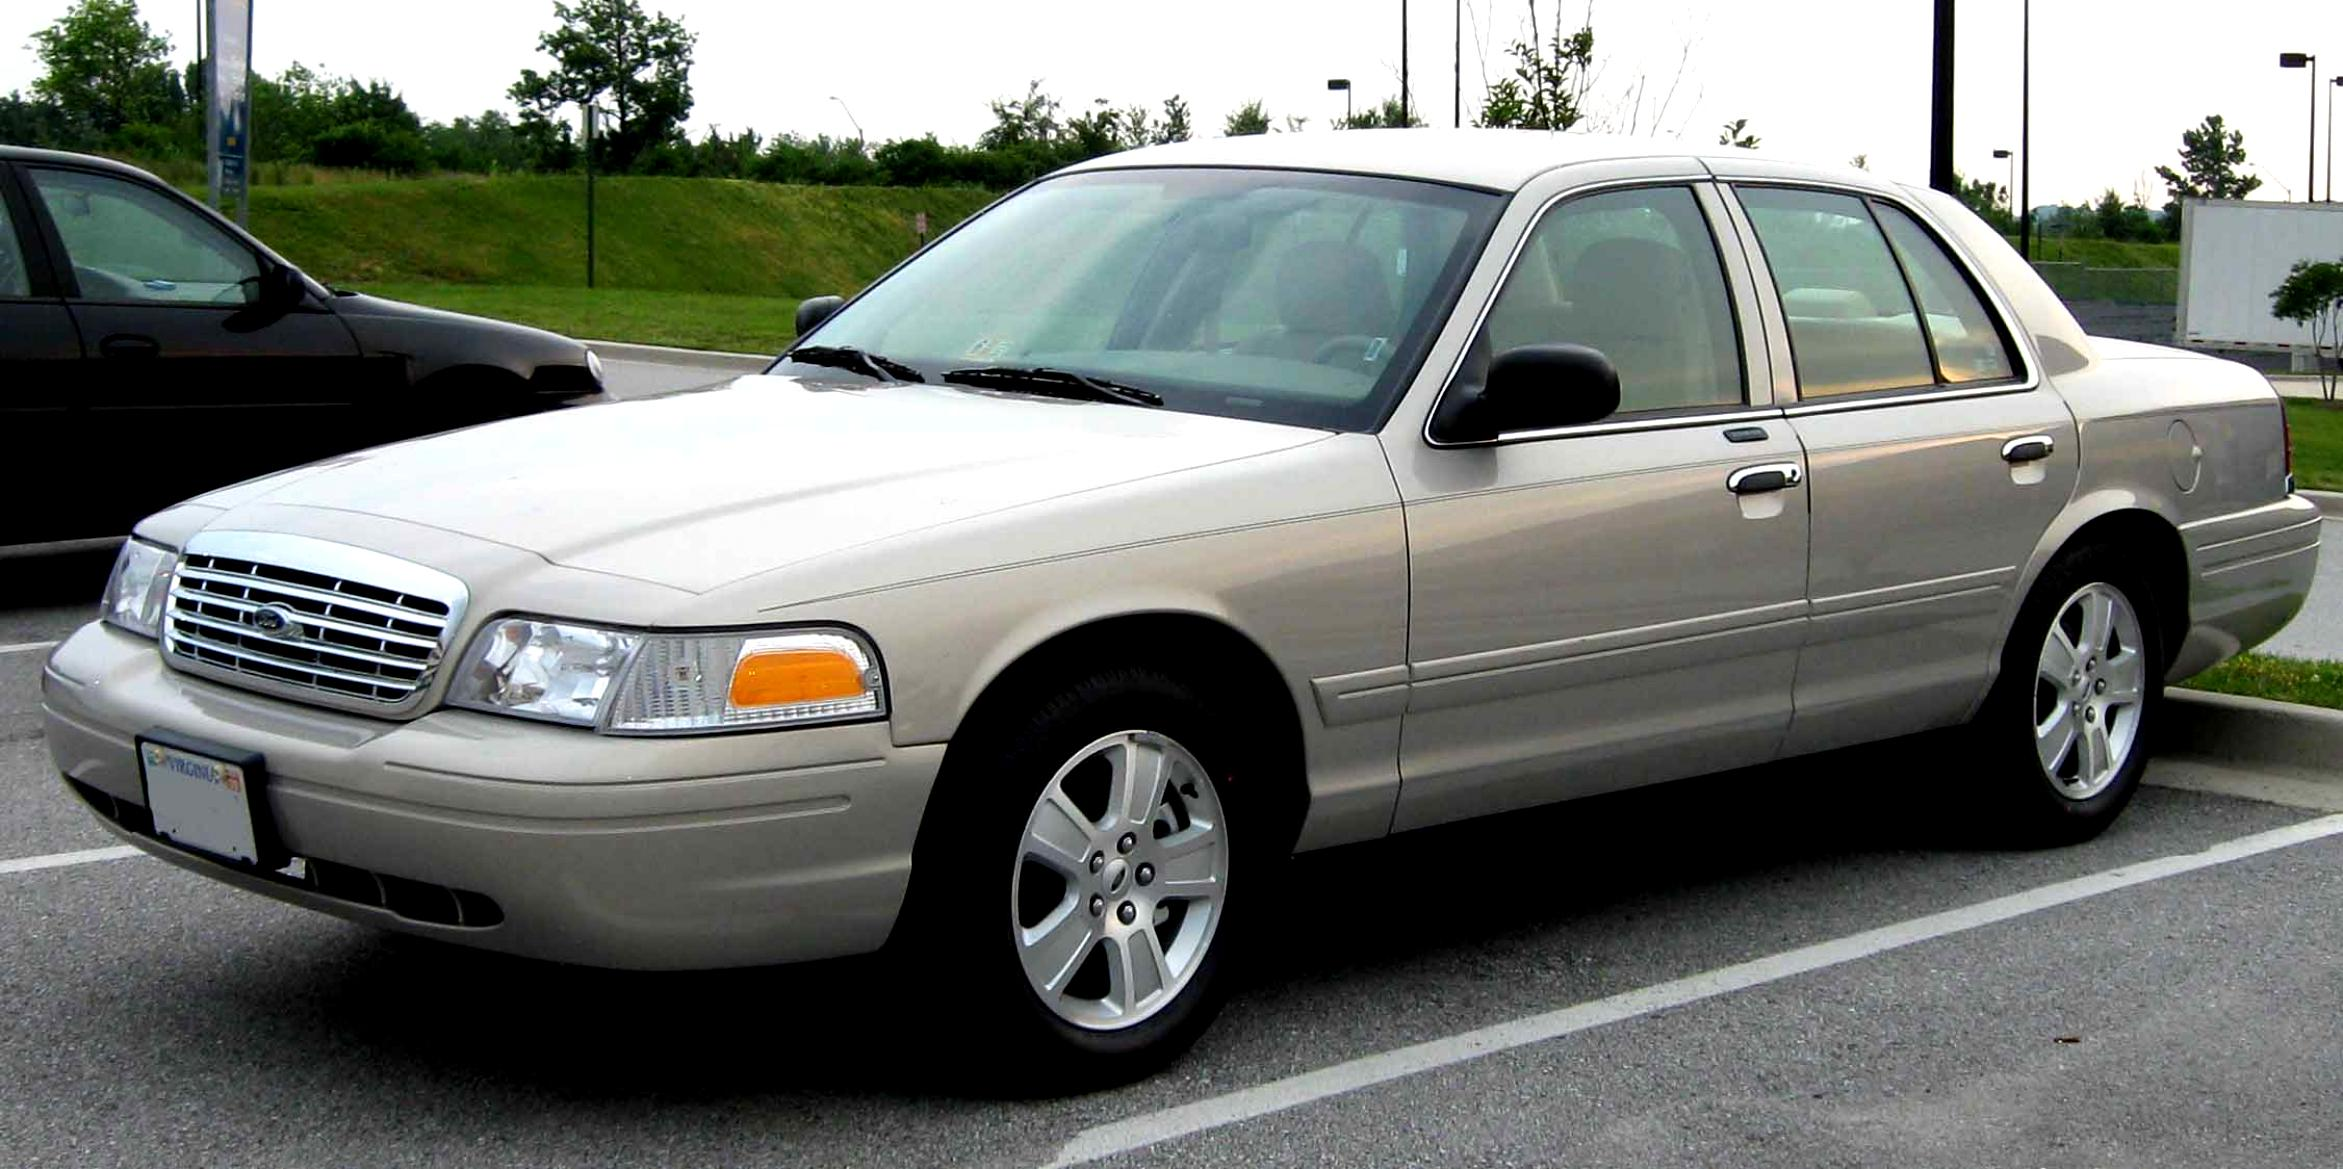 Ford Crown Victoria 1998 #4